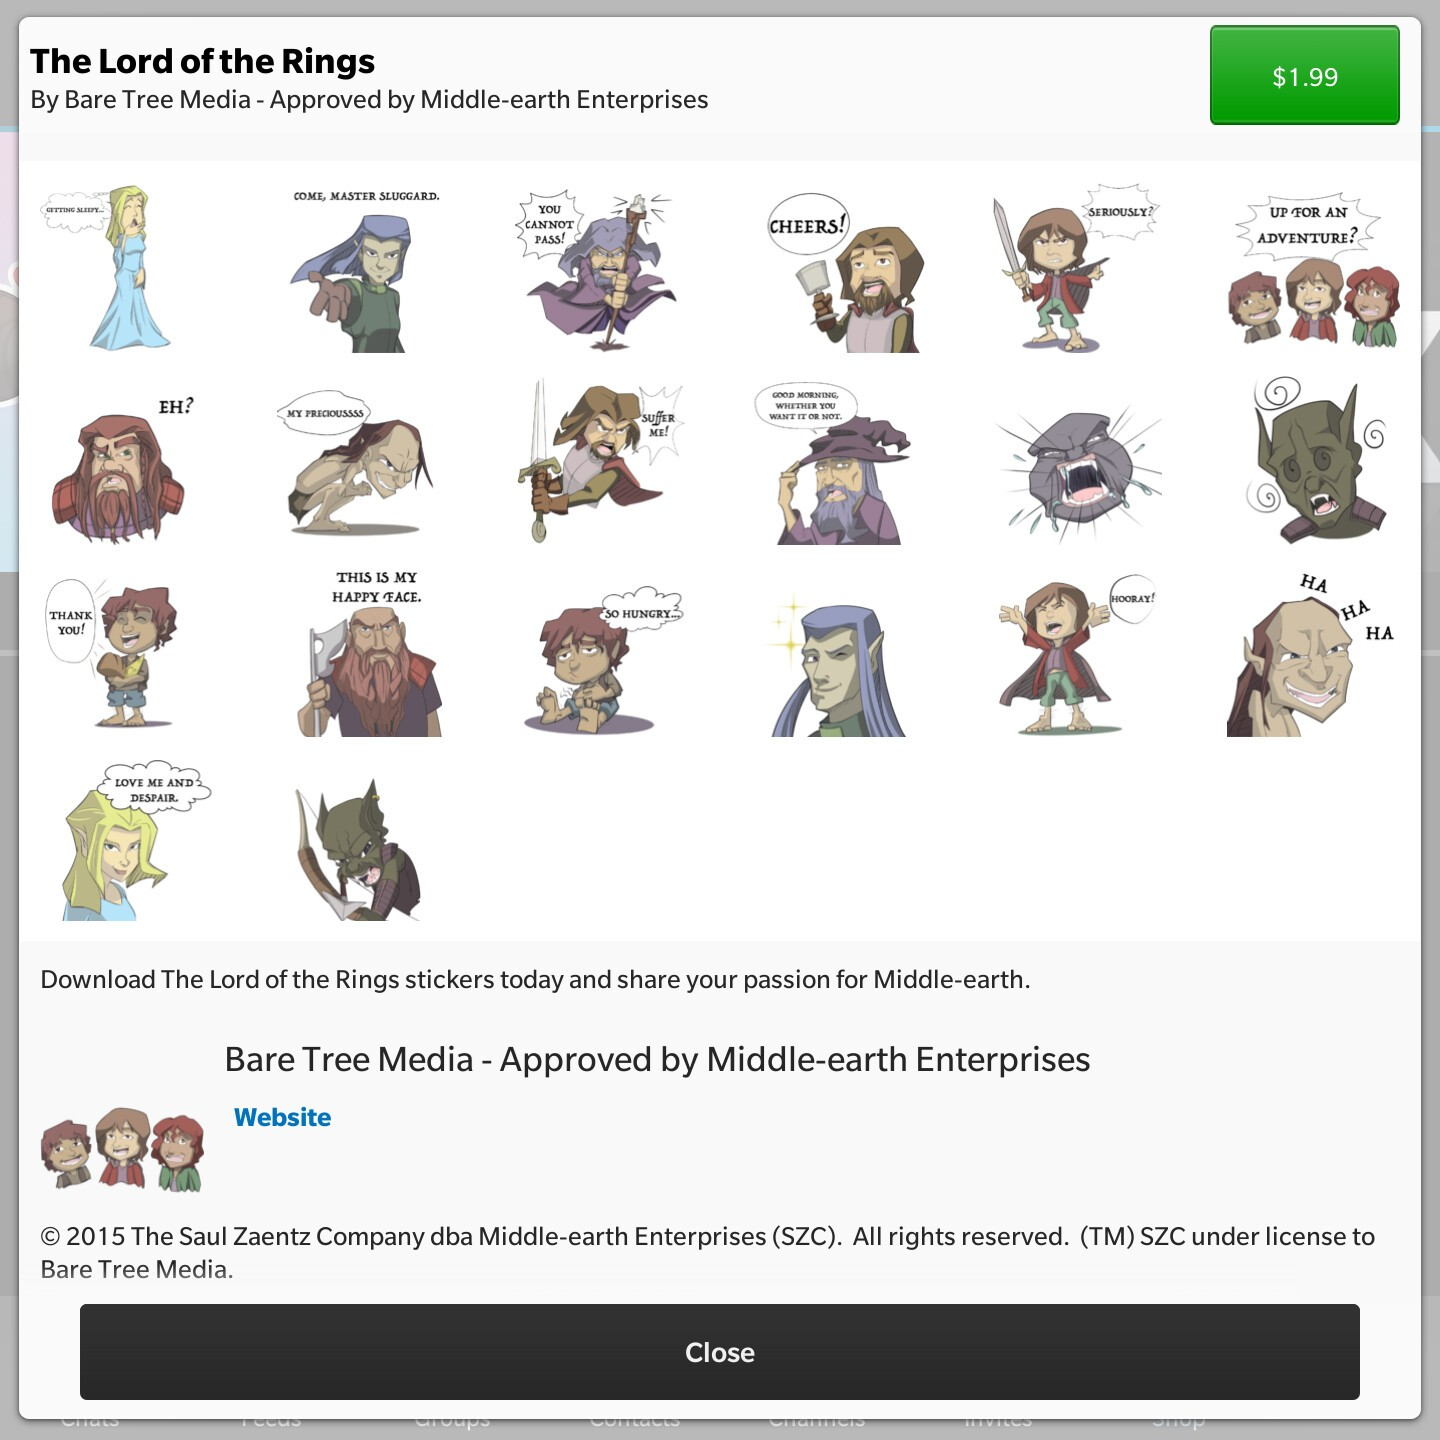 The Lord of the Rings BBM stickers now available